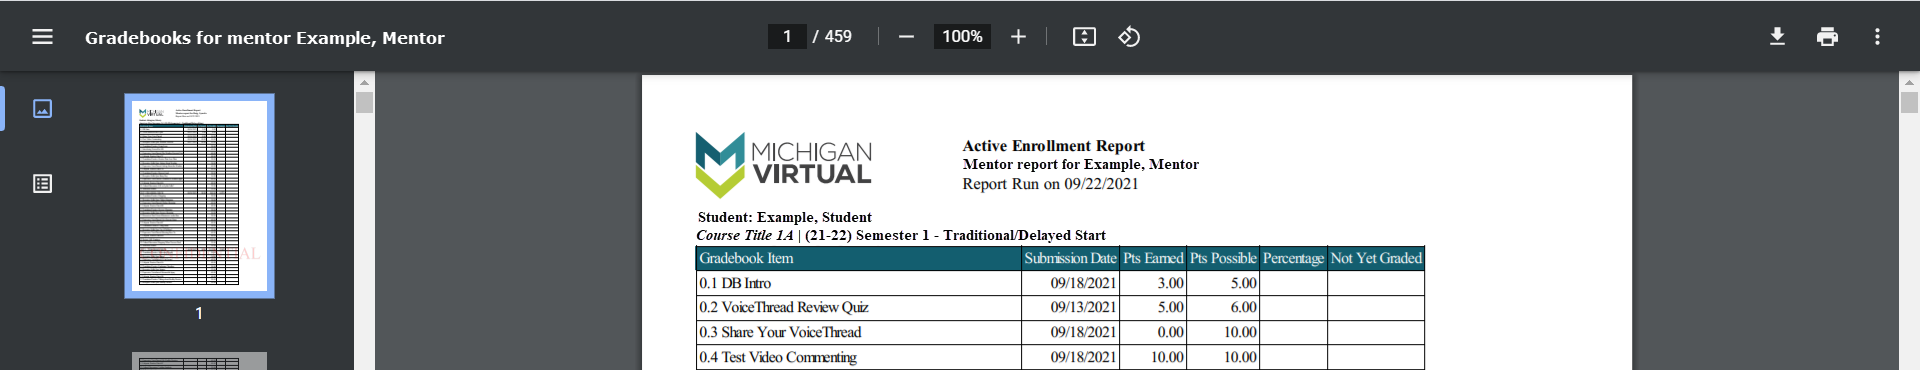 Image of the Mentor Gradebook report for an example mentor is shown displaying multiple pages to navigate. The Download and Print icons appear on the top right of the PDF and the page images are shown on the left menu.